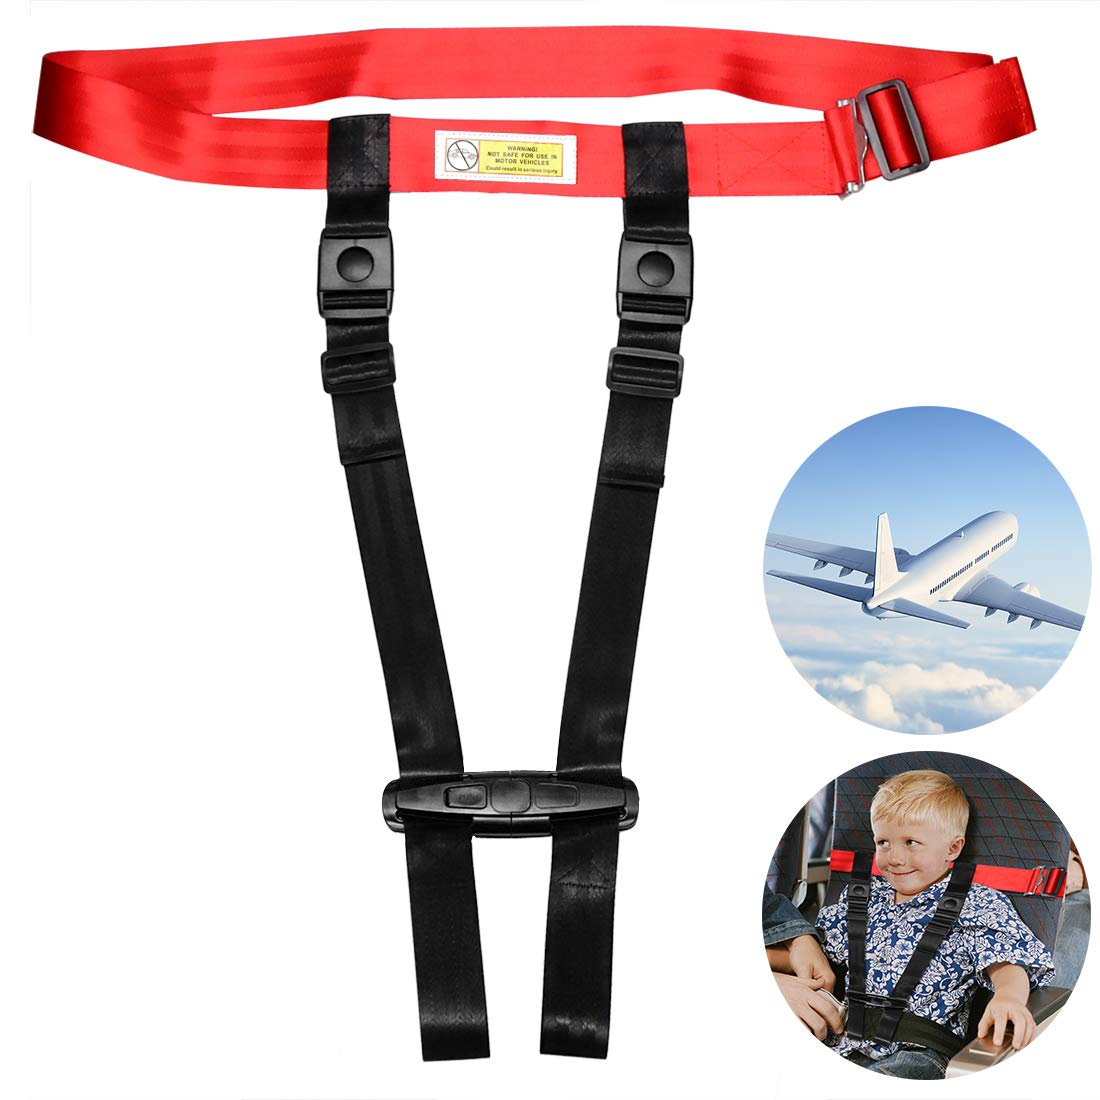 Child Airplane Travel Harness Safety Clip Strap Restraint System for Baby, Toddlers & Kids- for Airplane Travel Use Only